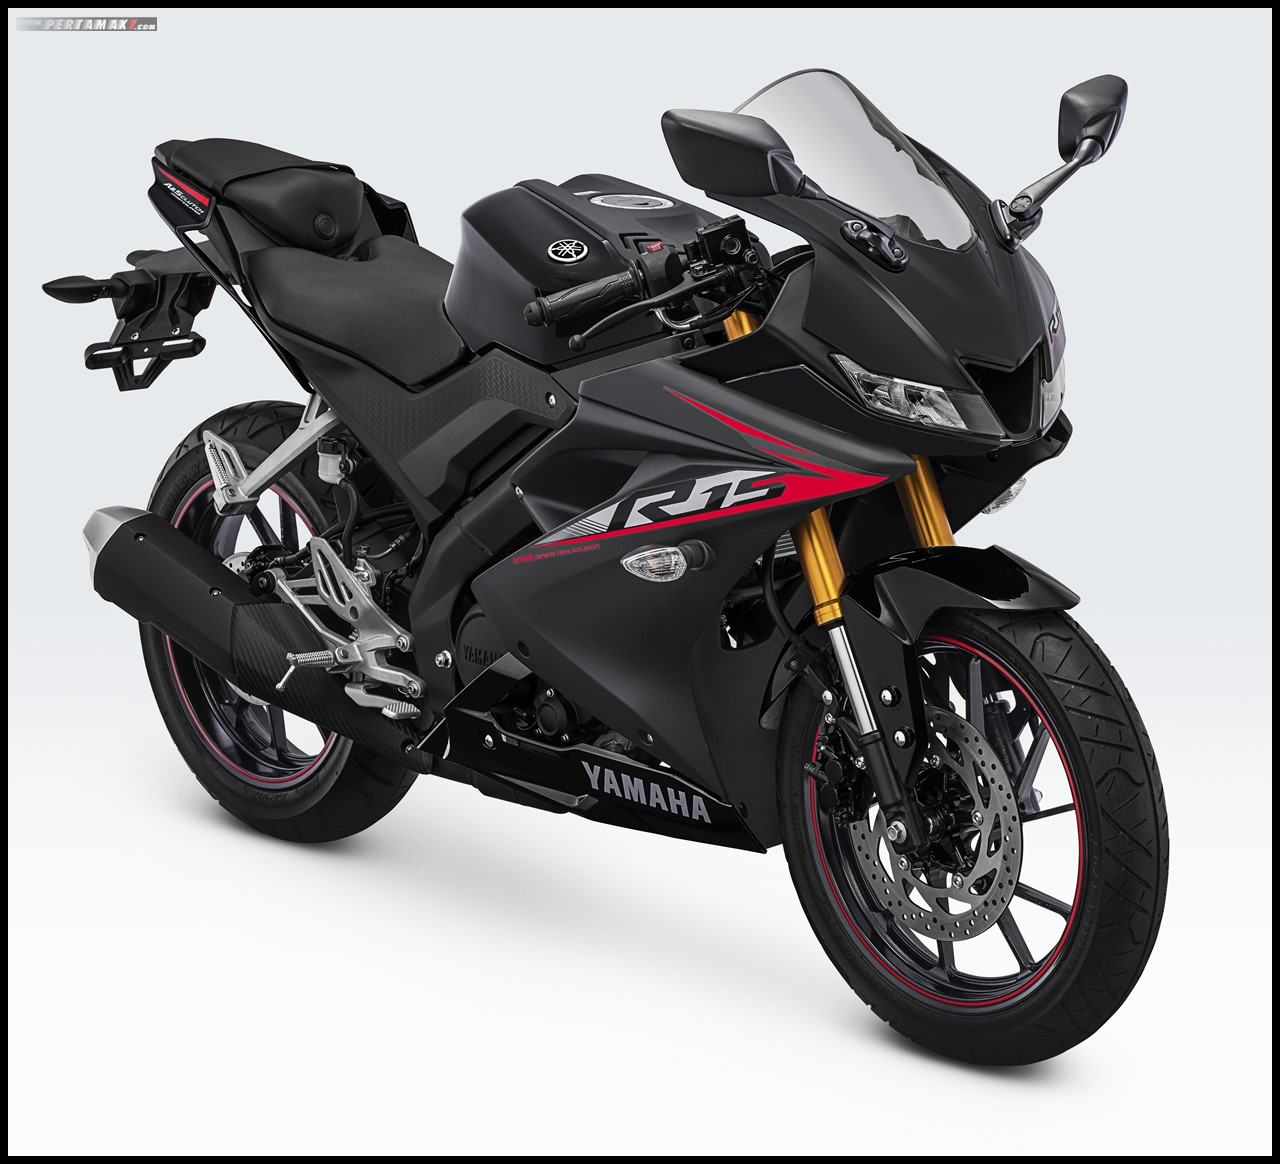 Yamaha New R15 V3.0 2019 Warna Hitam